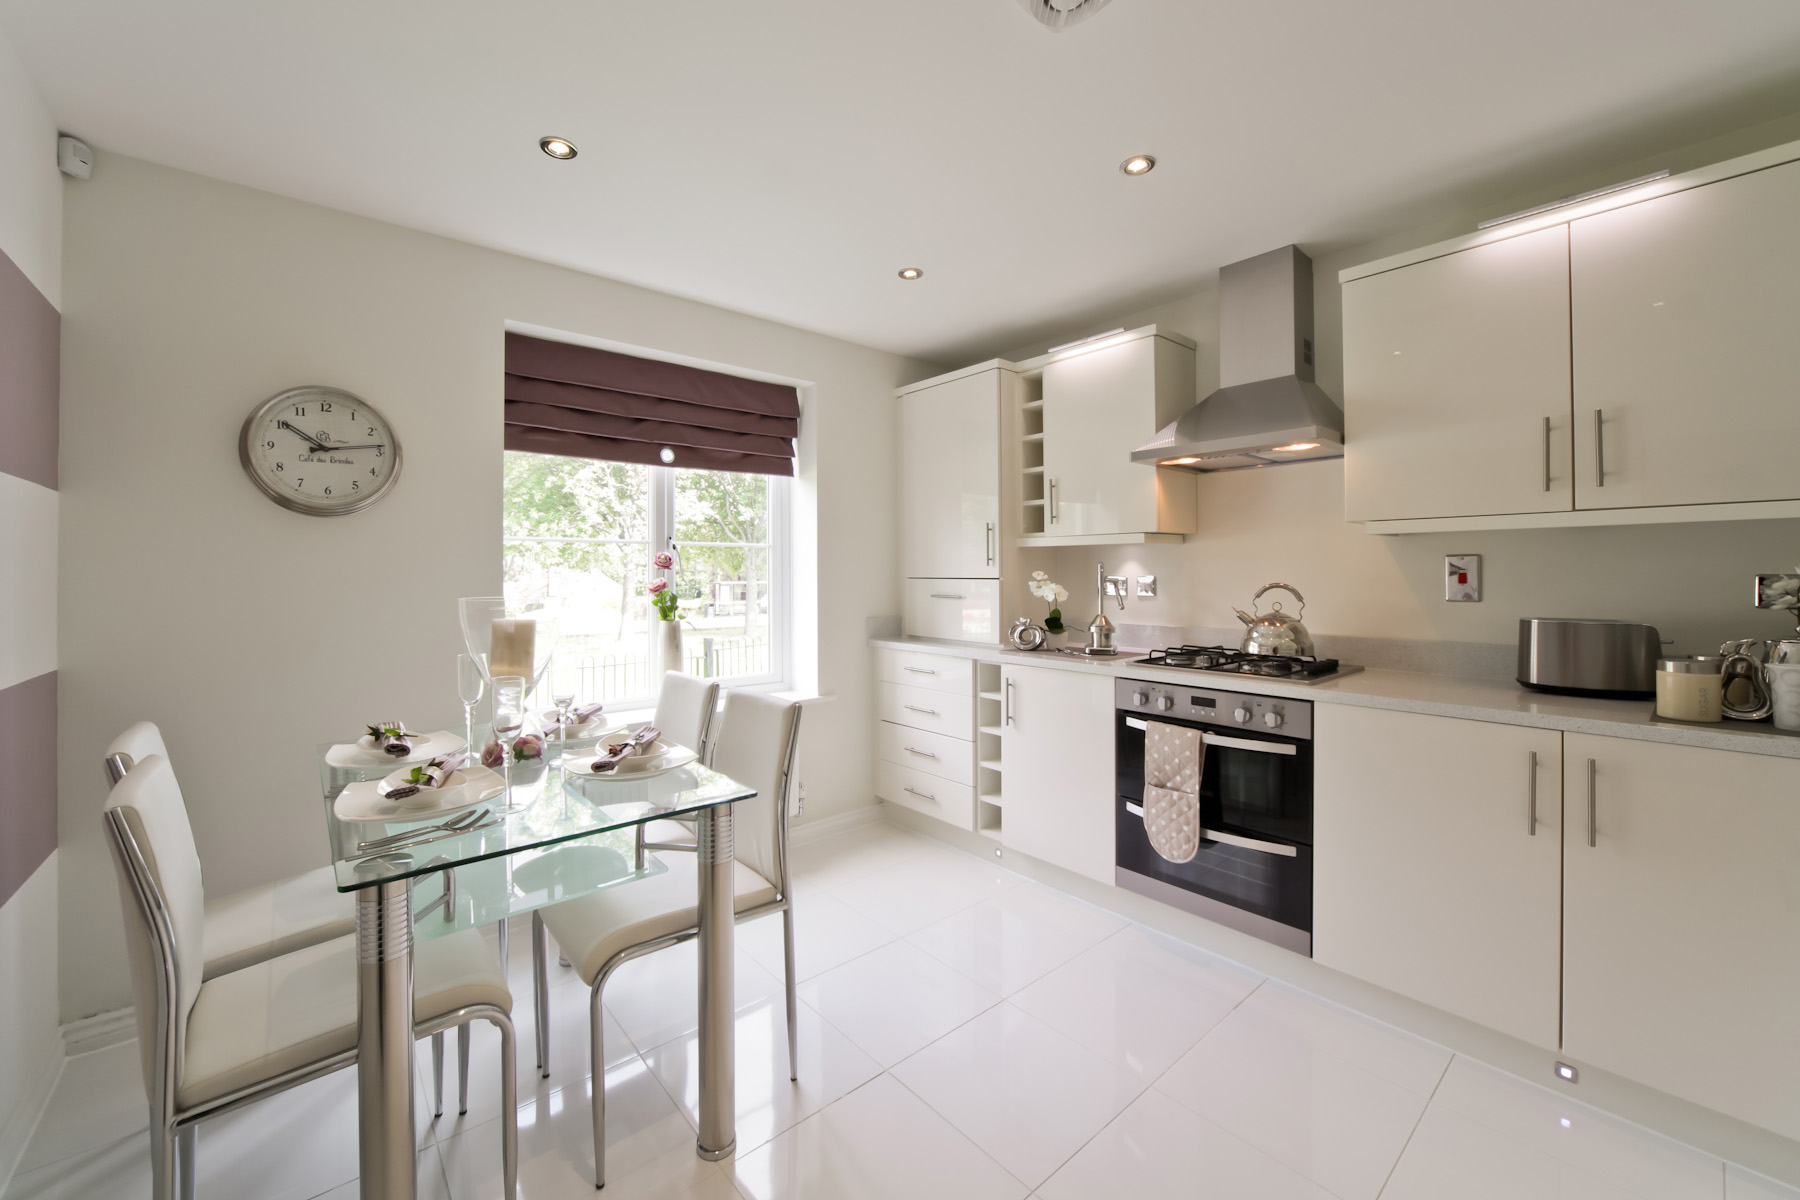 north-east-staiths-the-ministry-ii-pa41-kempsford-14-kitchen